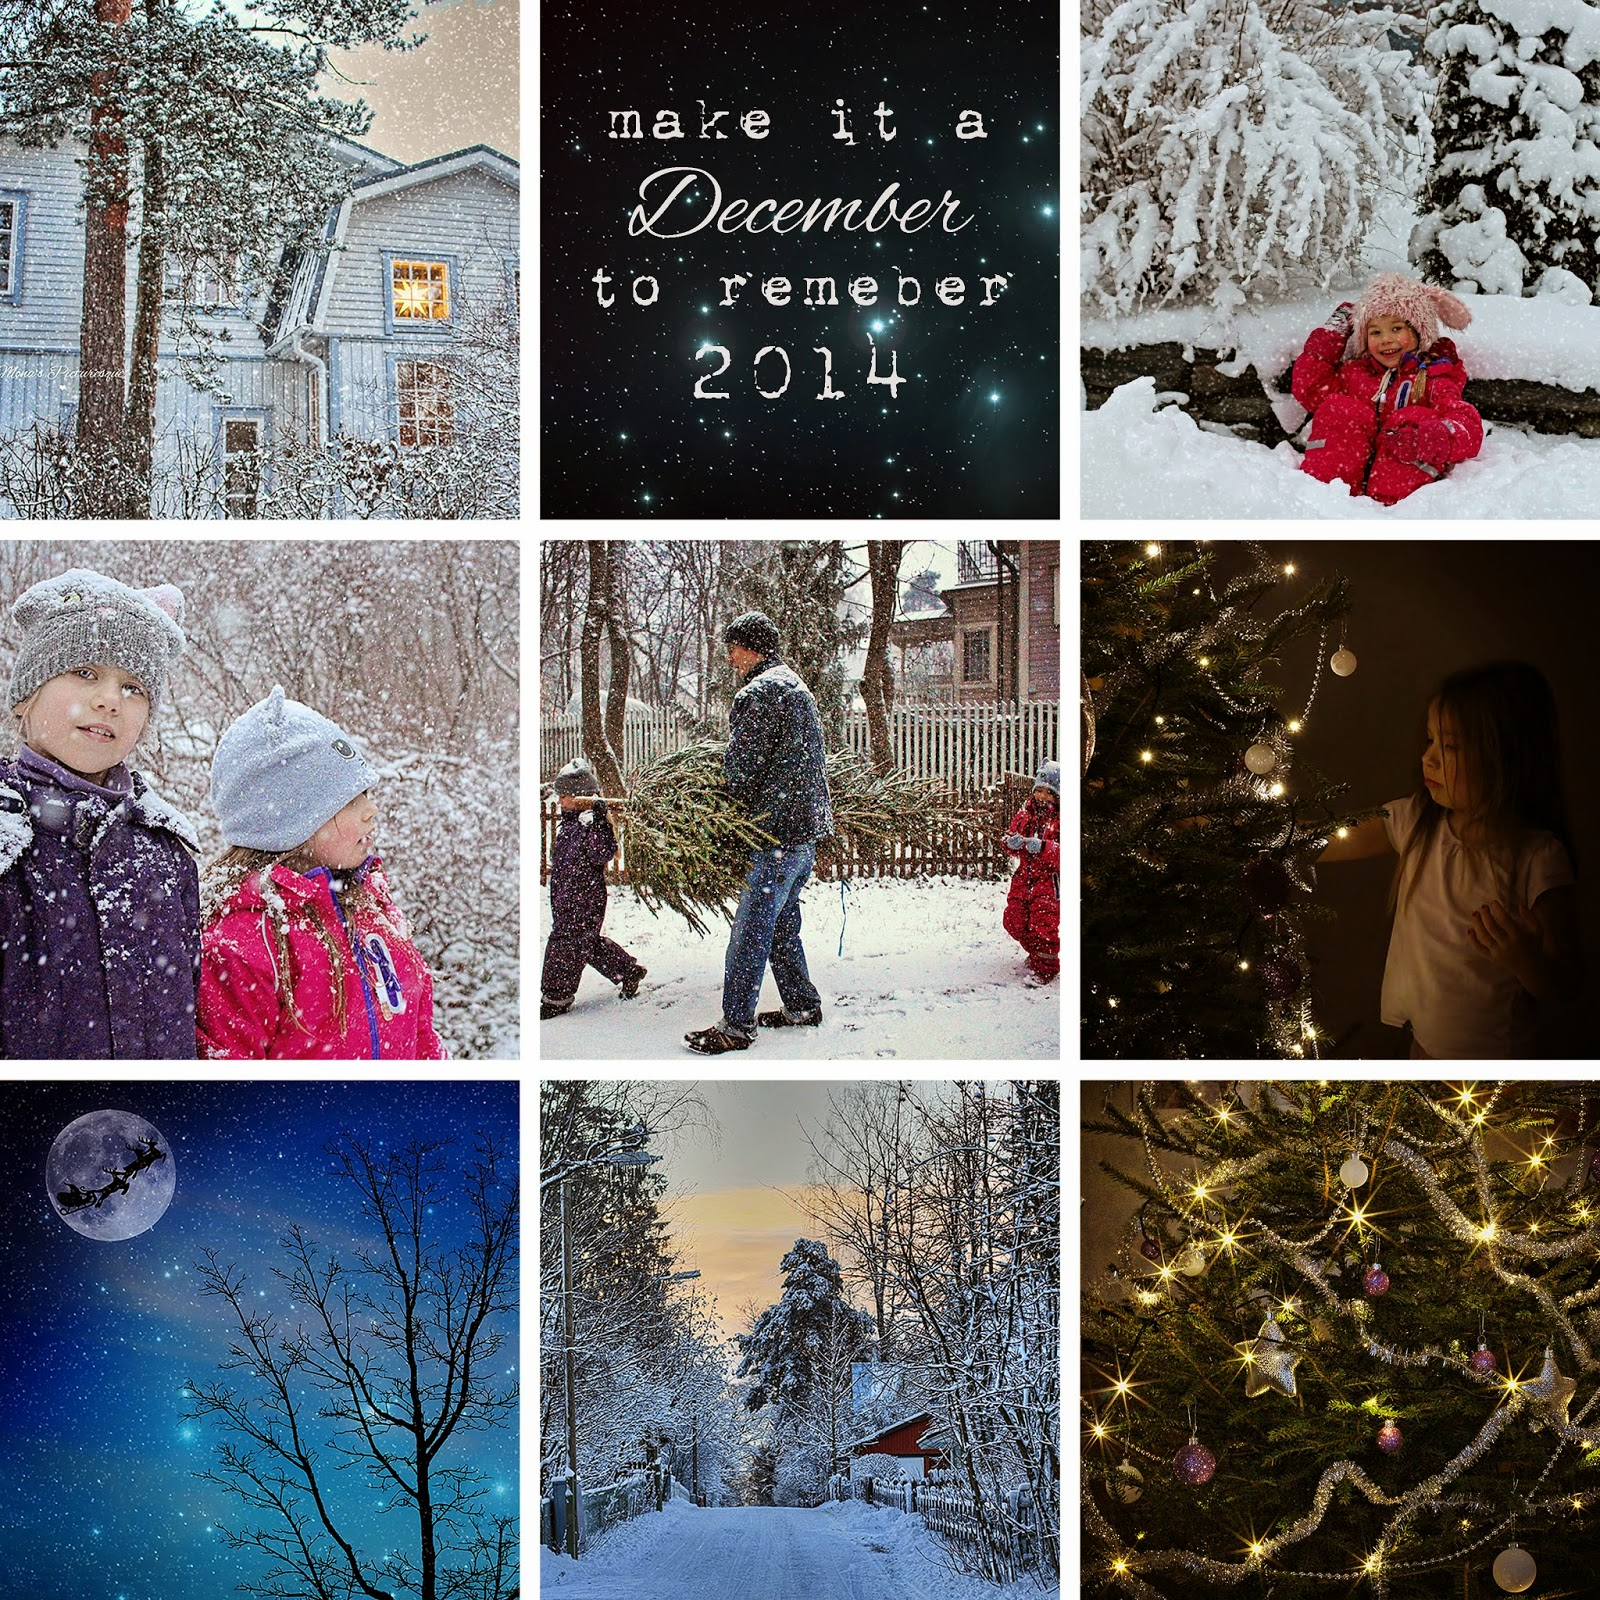 Monas Picturesque December Memories A Free Template For 2015